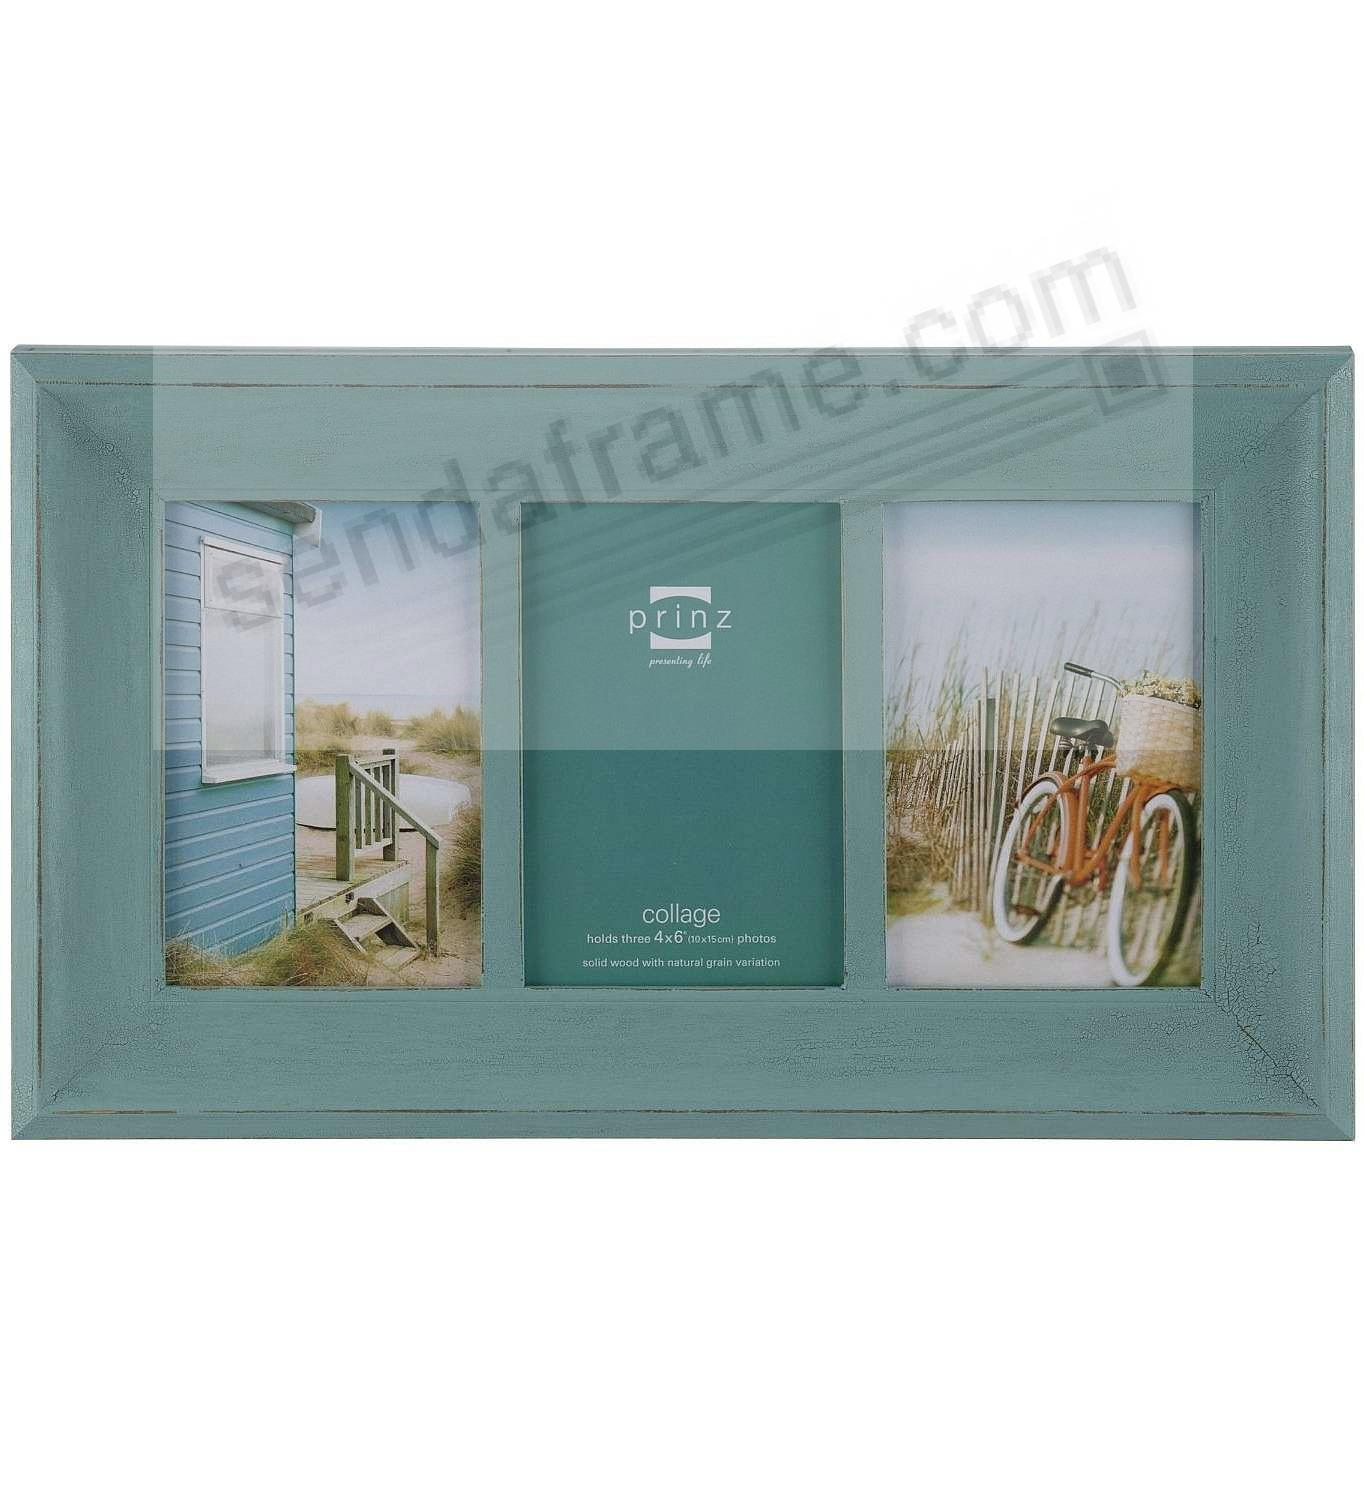 CLEARWATER Aquamarine-stain wood 3/4x6 collage frame by Prinz ...